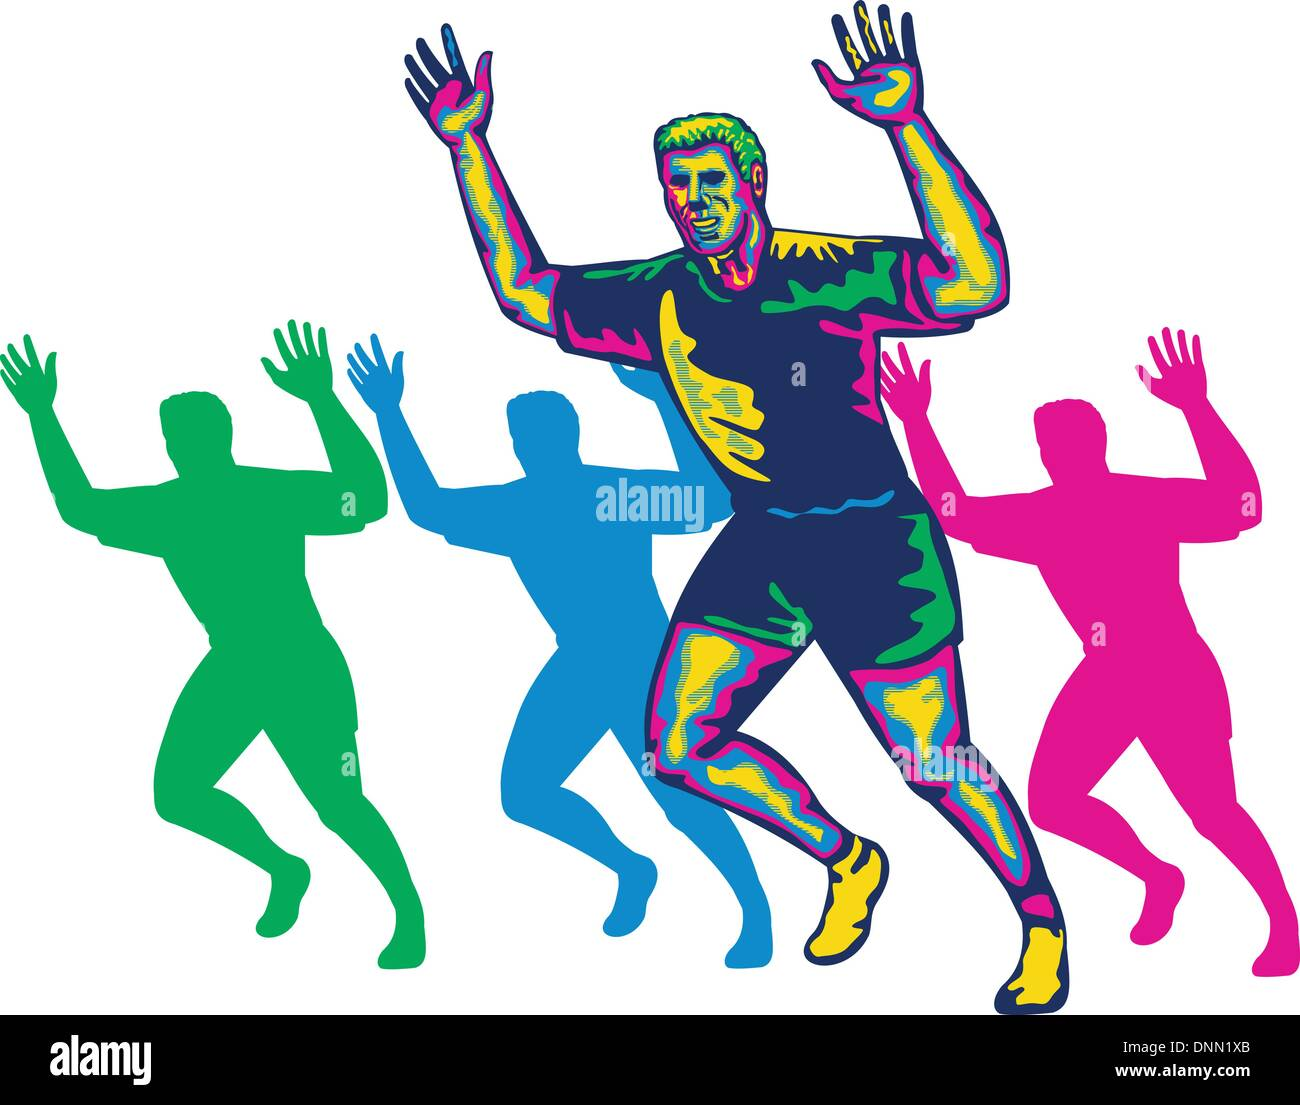 Illustration of a happy marathon runner running with hands up done in retro style on isolated white background Stock Vector